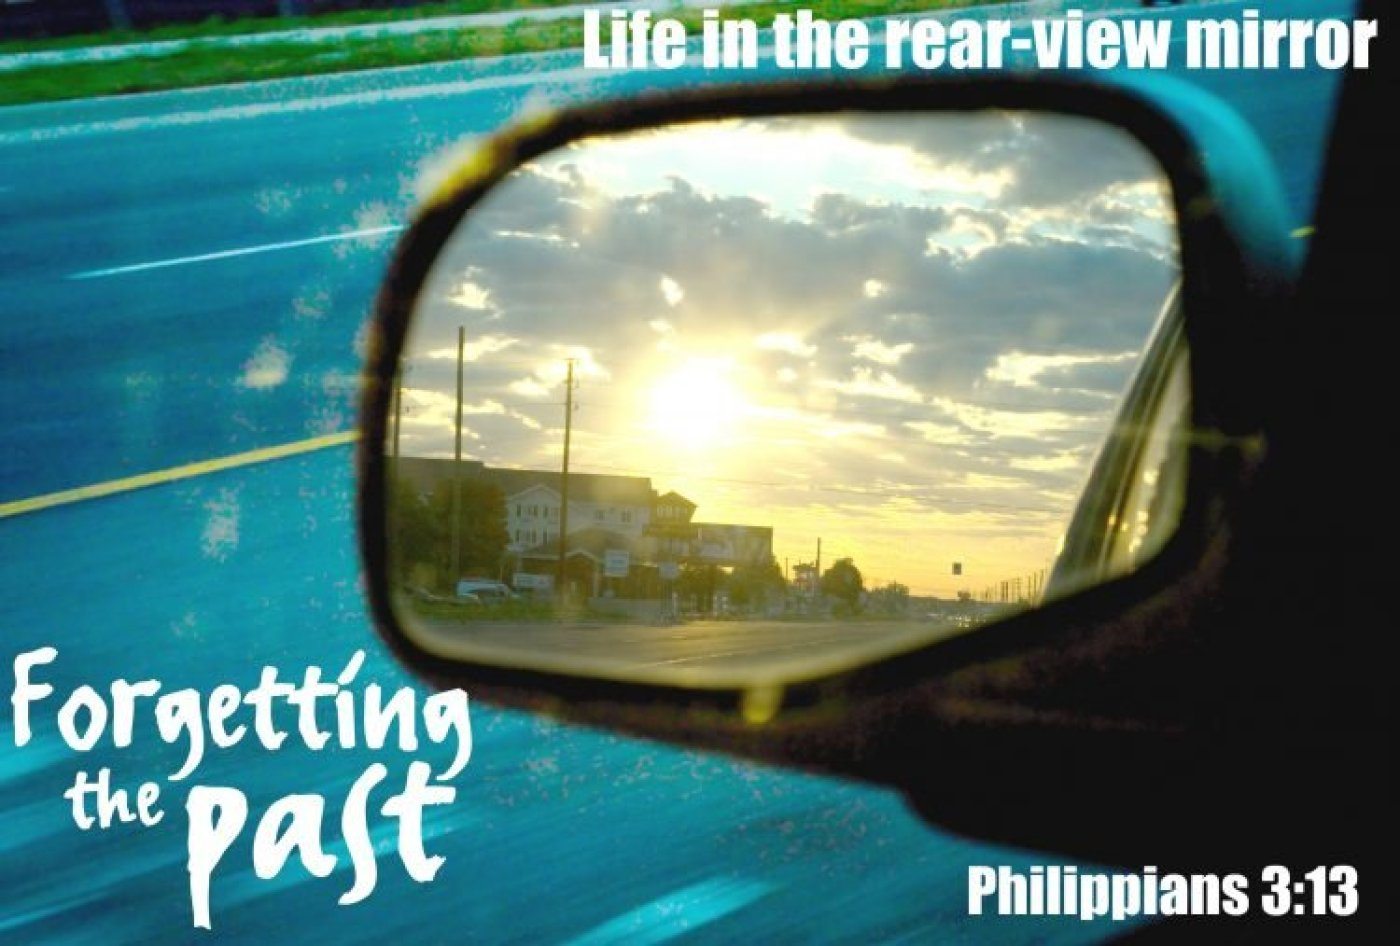 forgetting-the-past-philippians-3-13